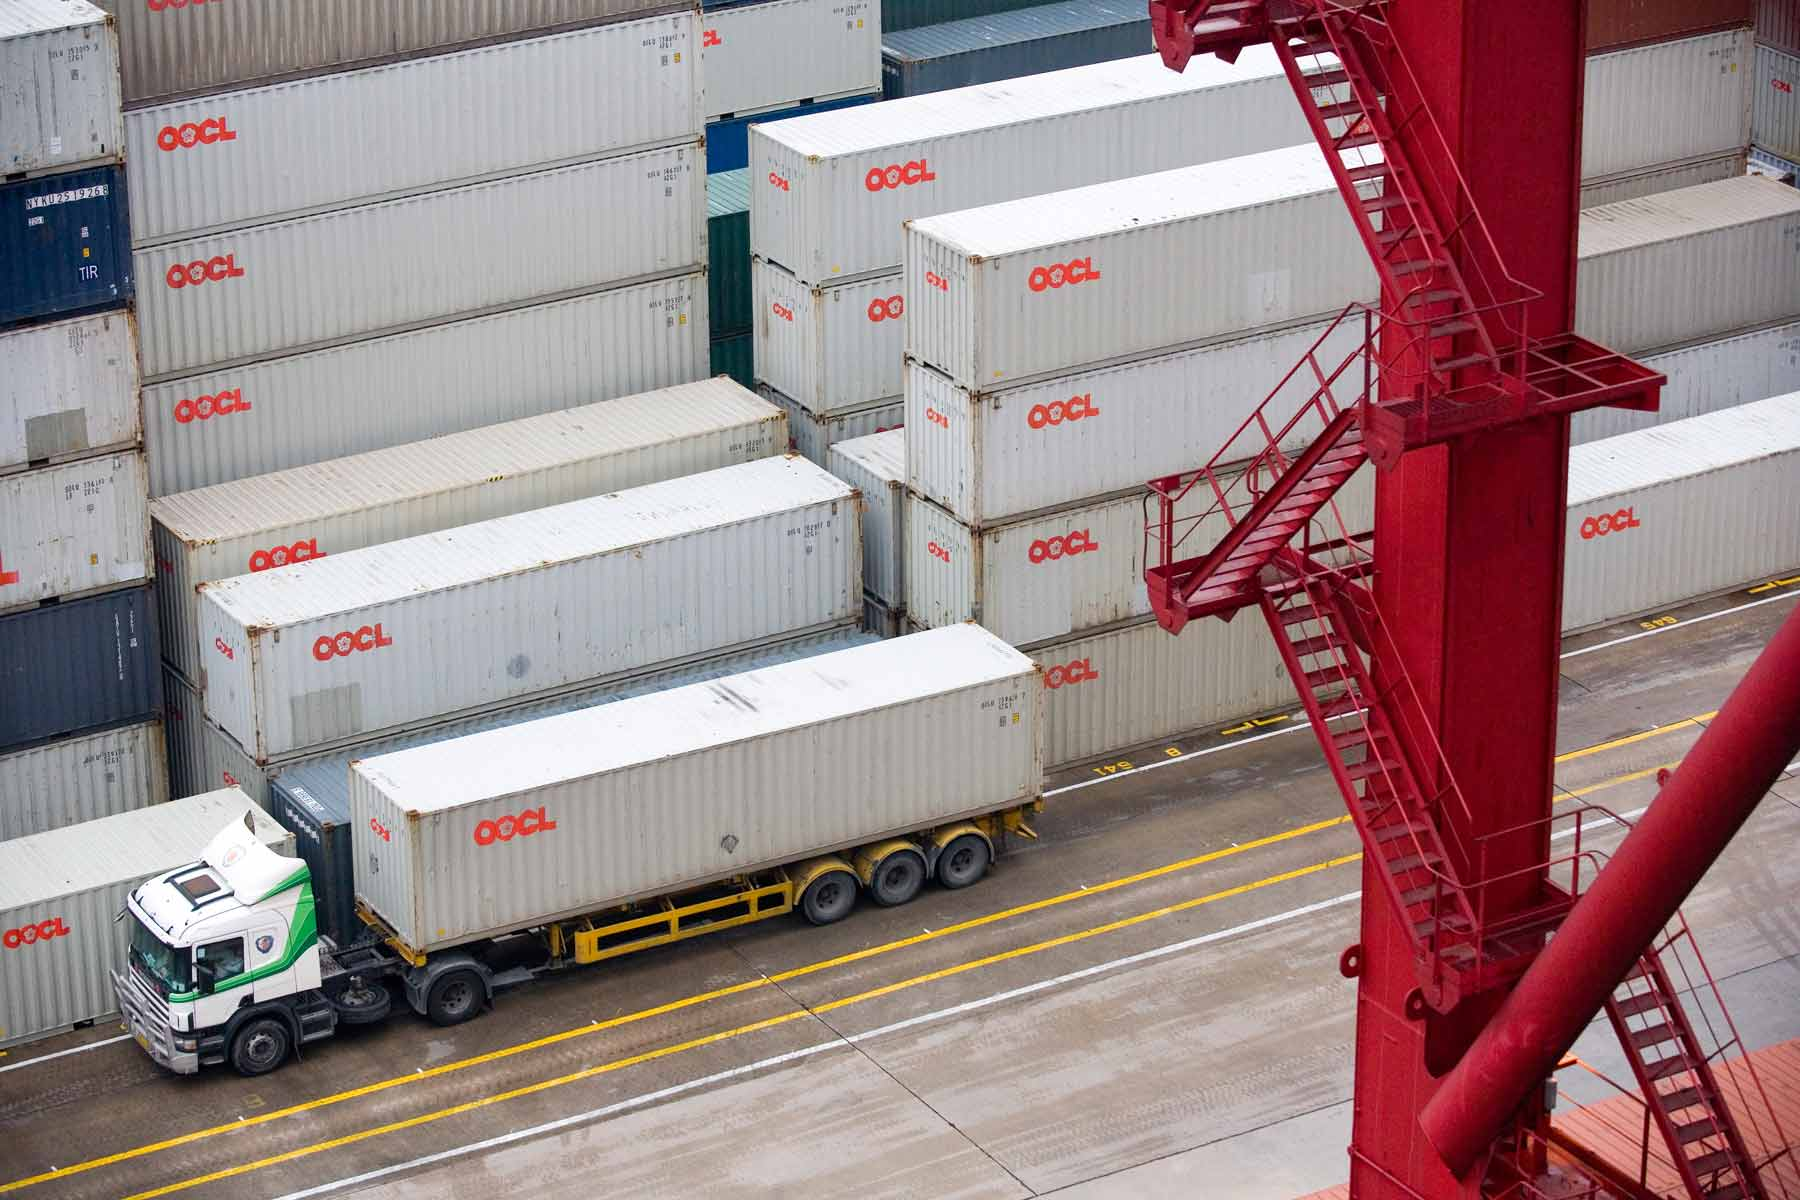 OOCL - Containers